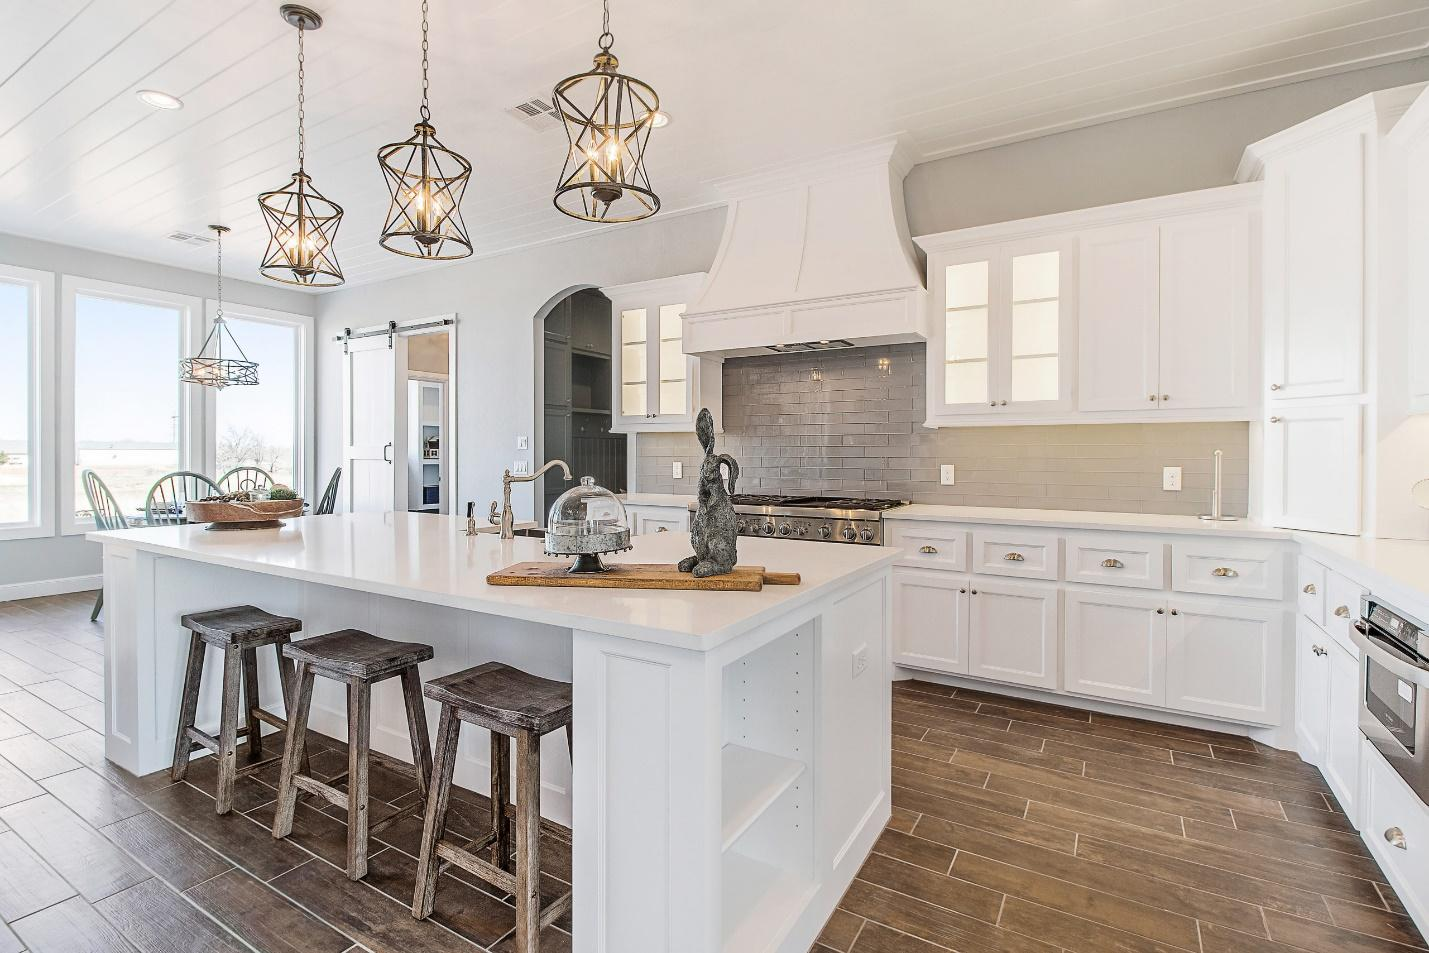 Luxury kitchen interior, farmhouse barstools and rustic light fixtures